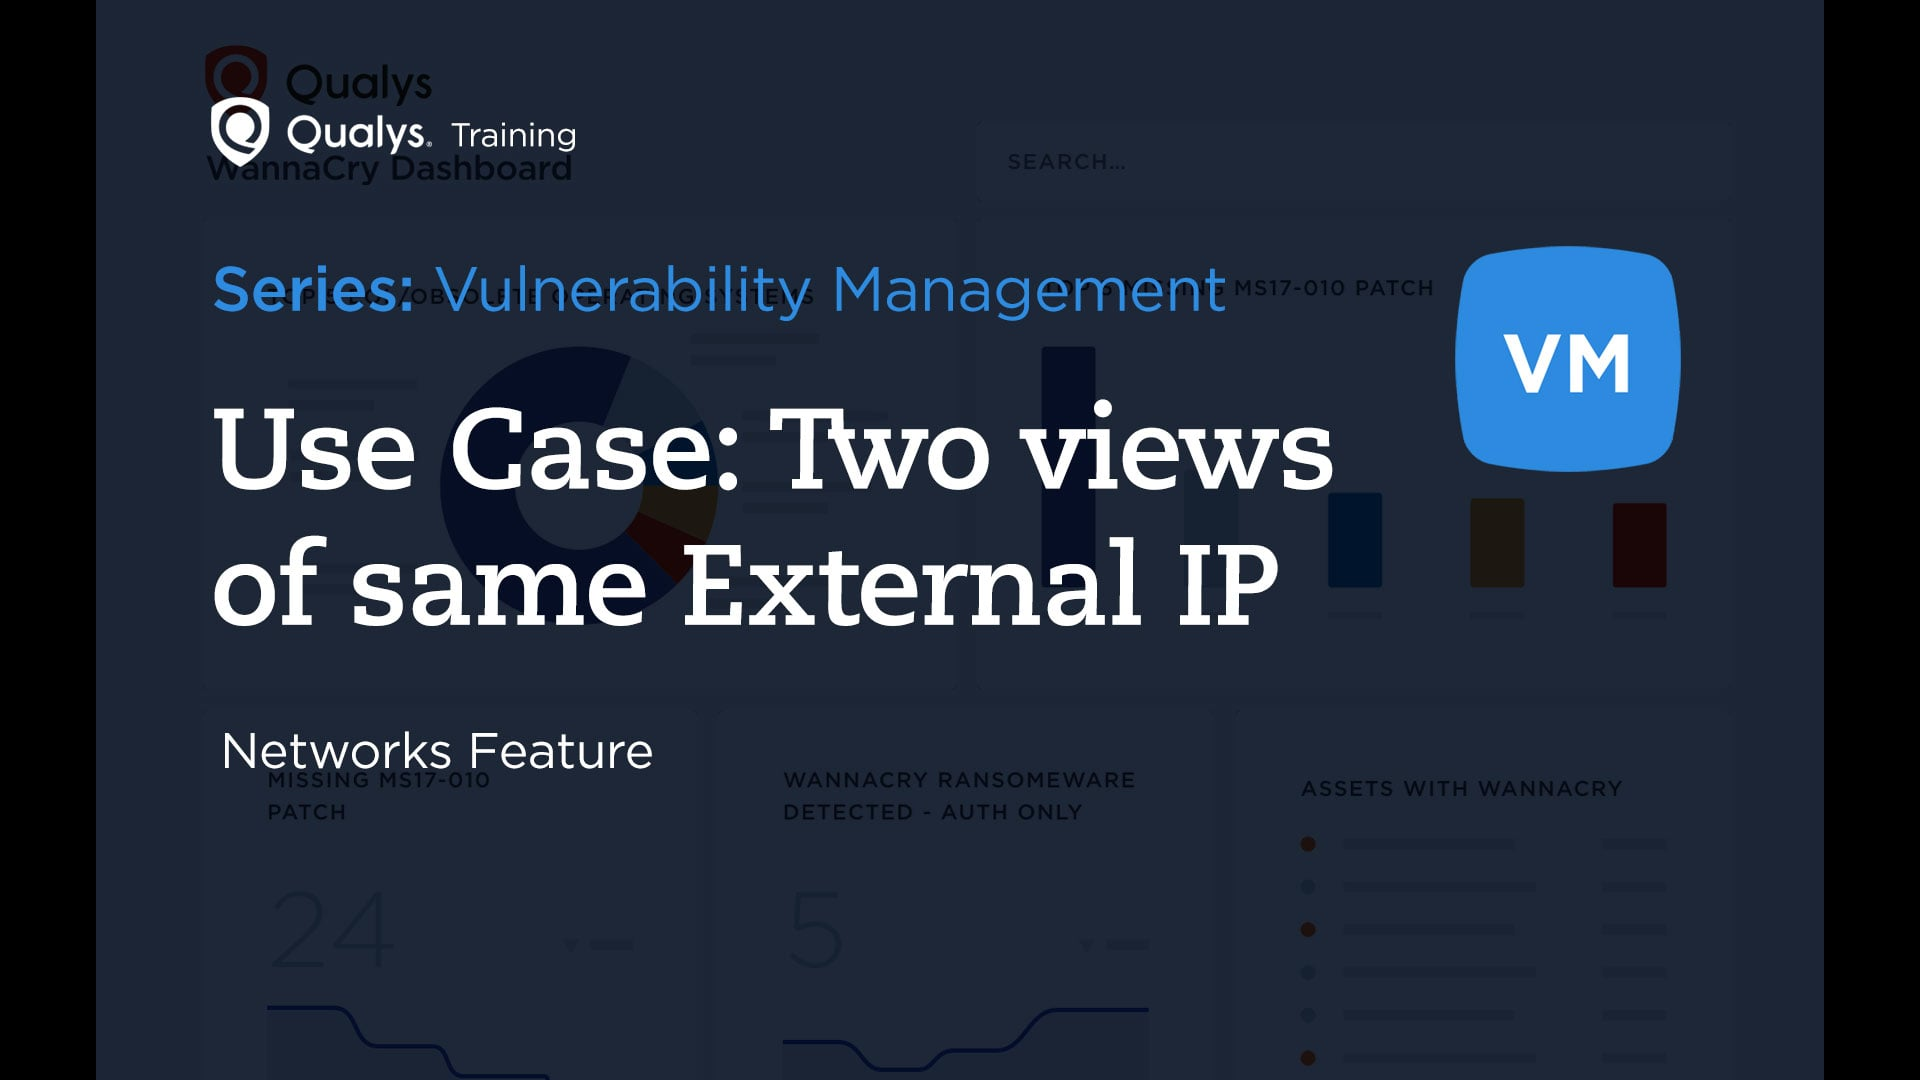 Use Case: Two views of same External IP